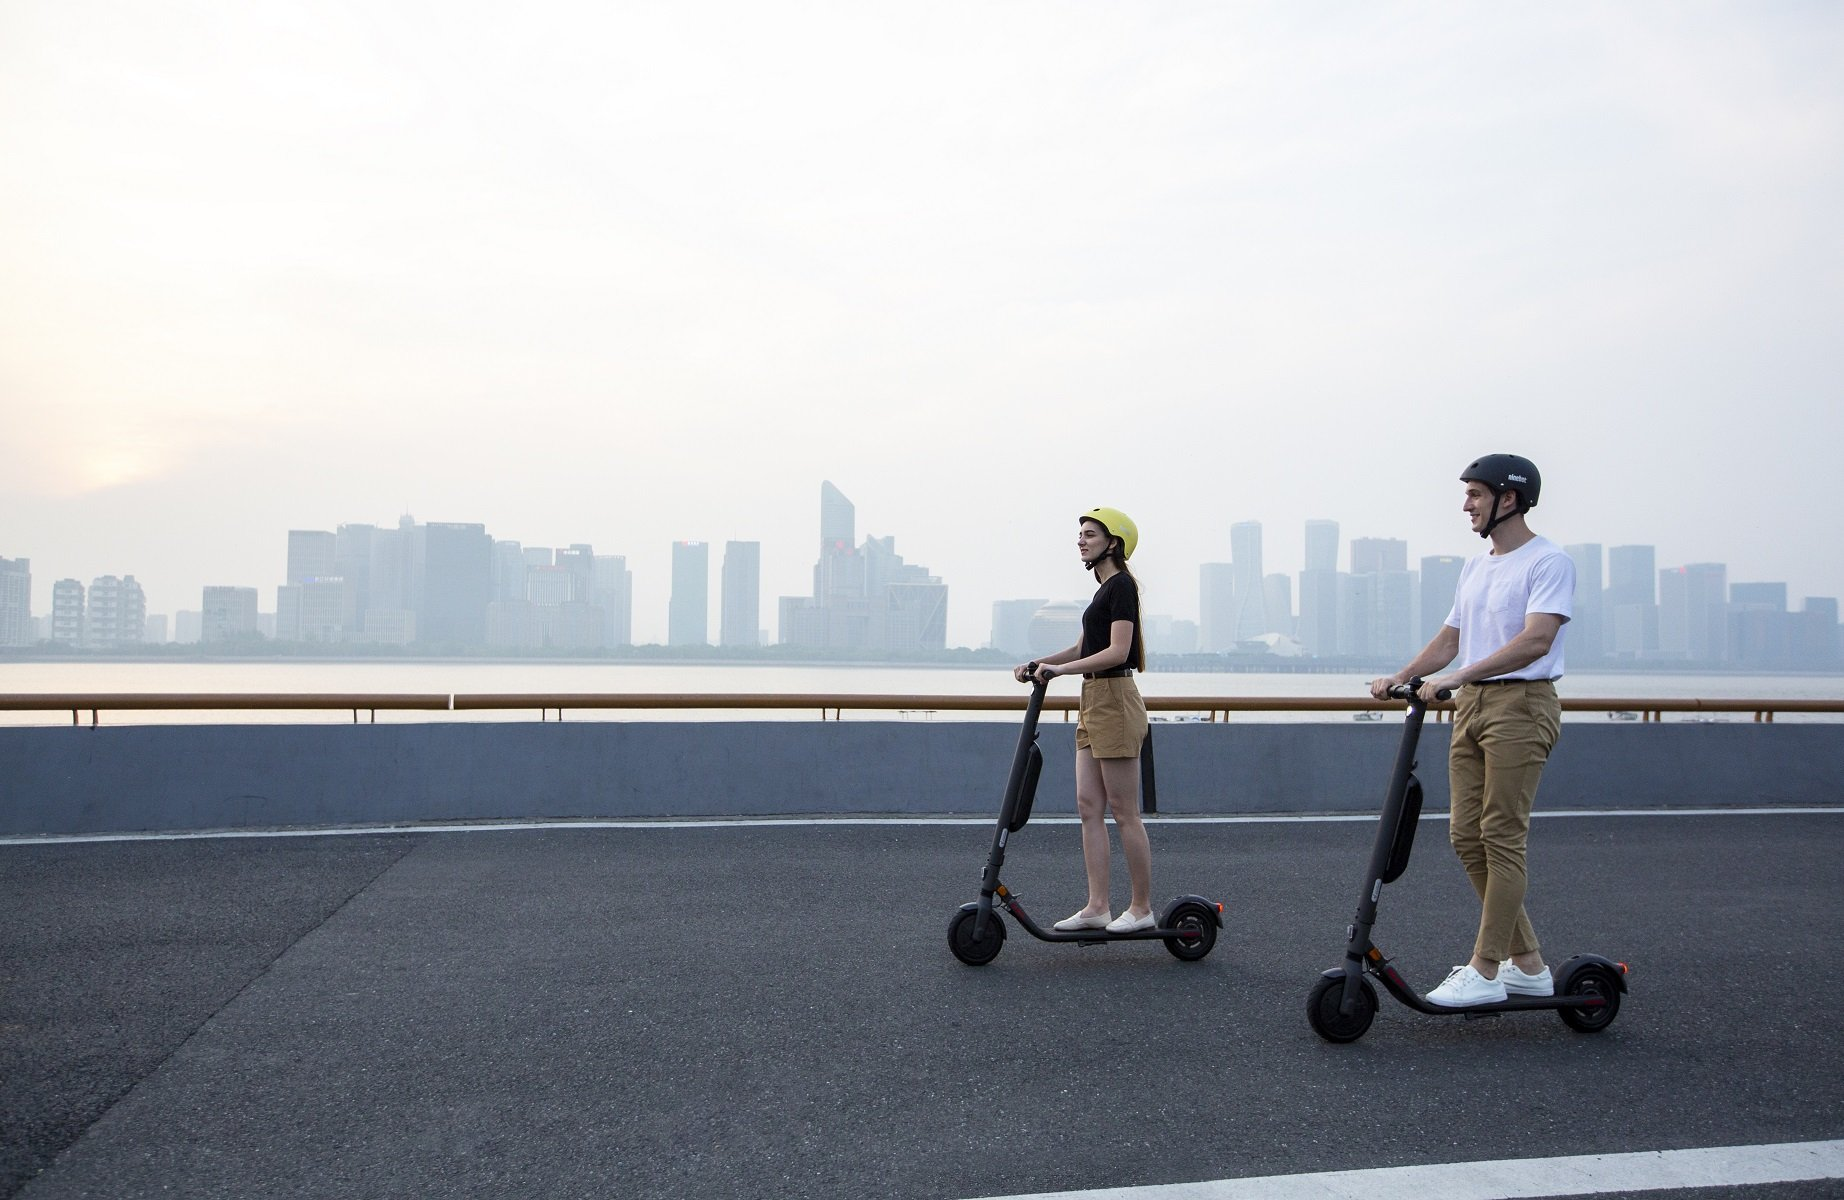 Segway Ninebot E45E Electric Scooter   Expert Opinion 4